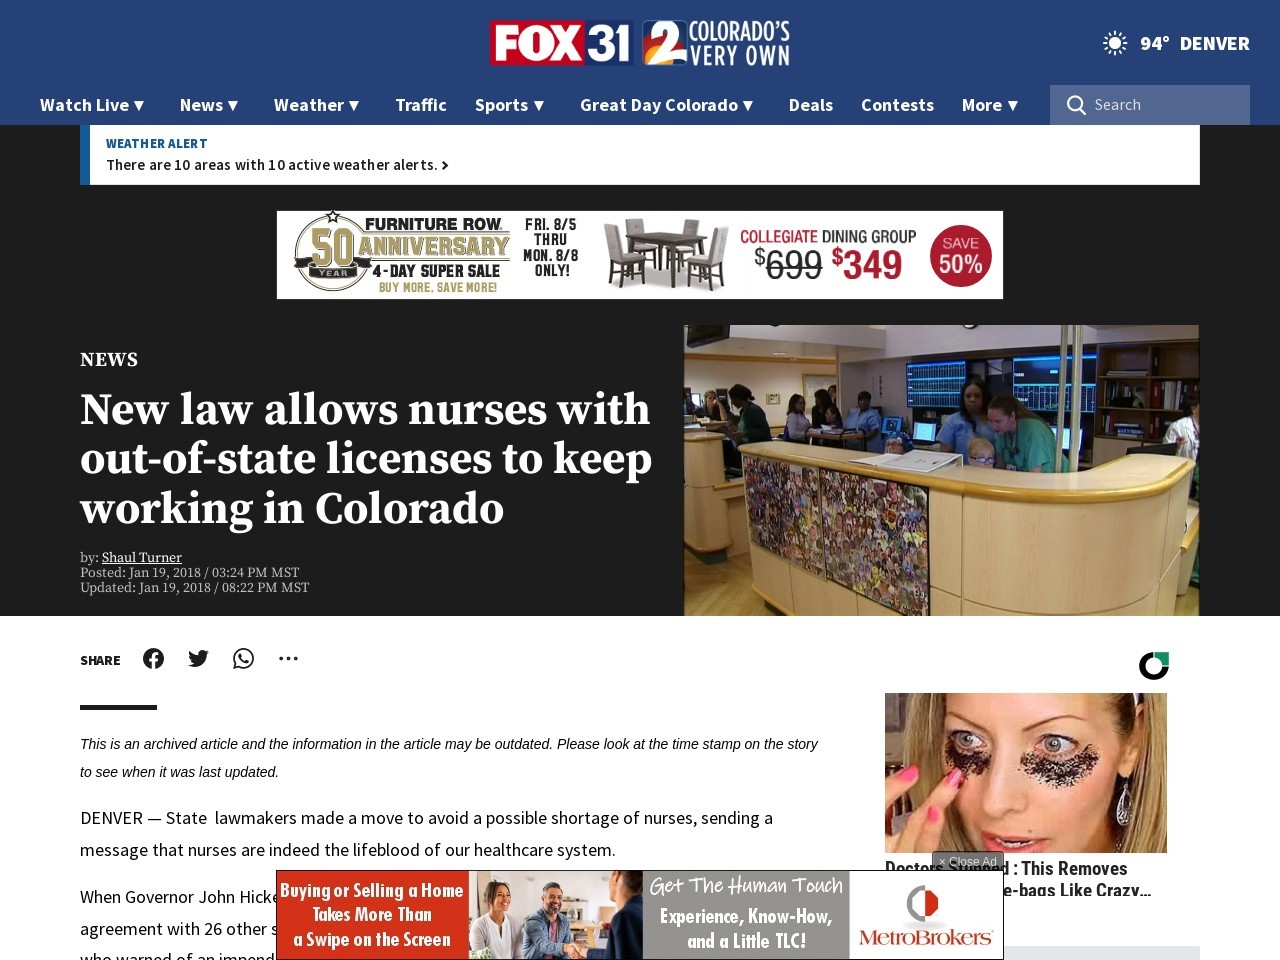 New law allows nurses with out-of-state licenses to keep working in Colorado